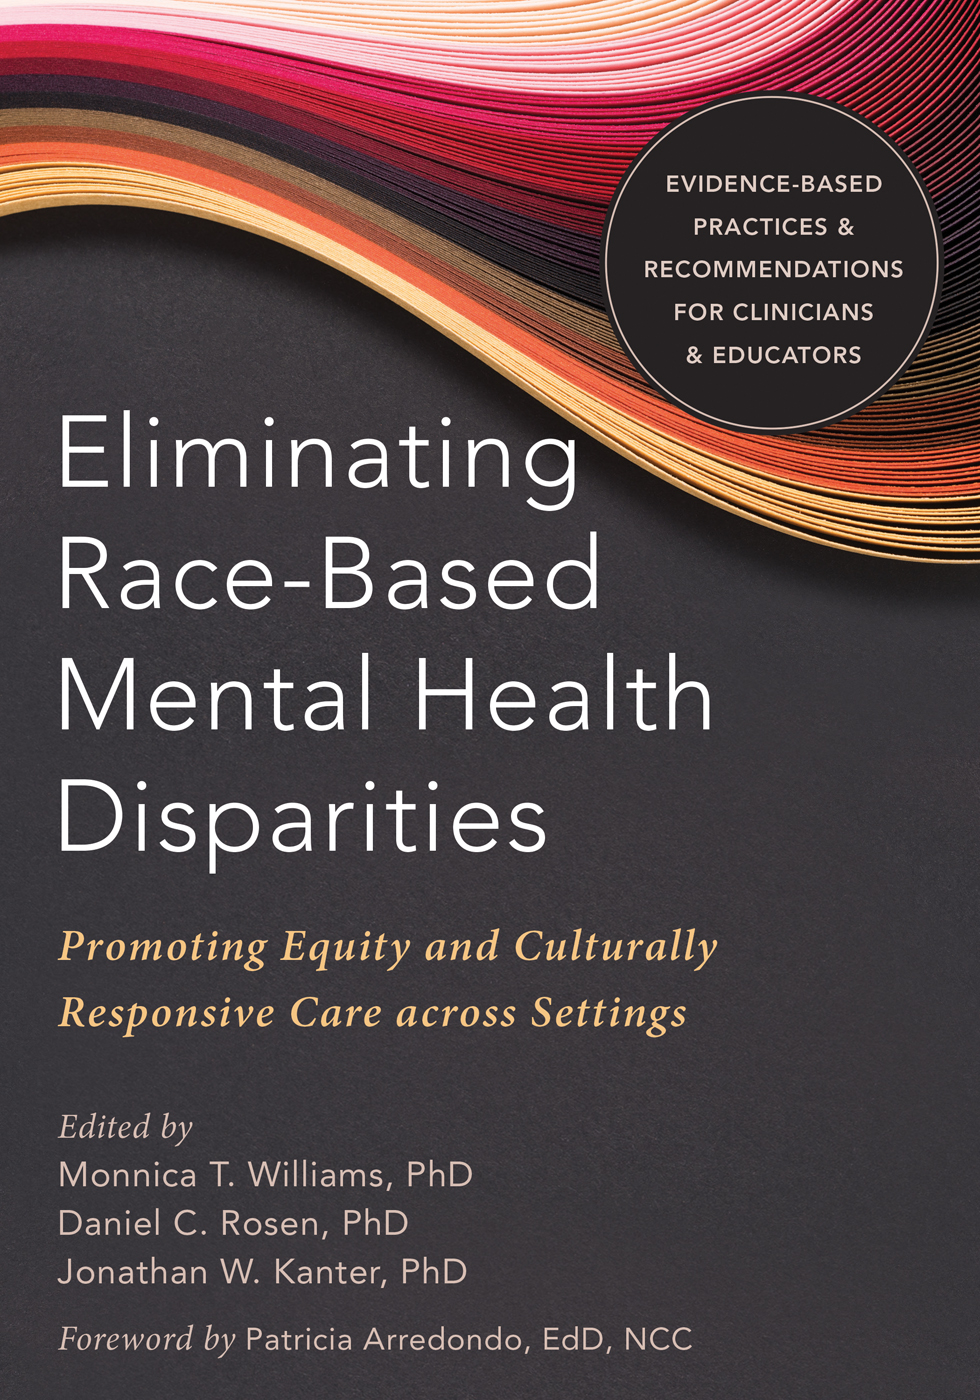 Eliminating Race-Based Mental Health Disparities